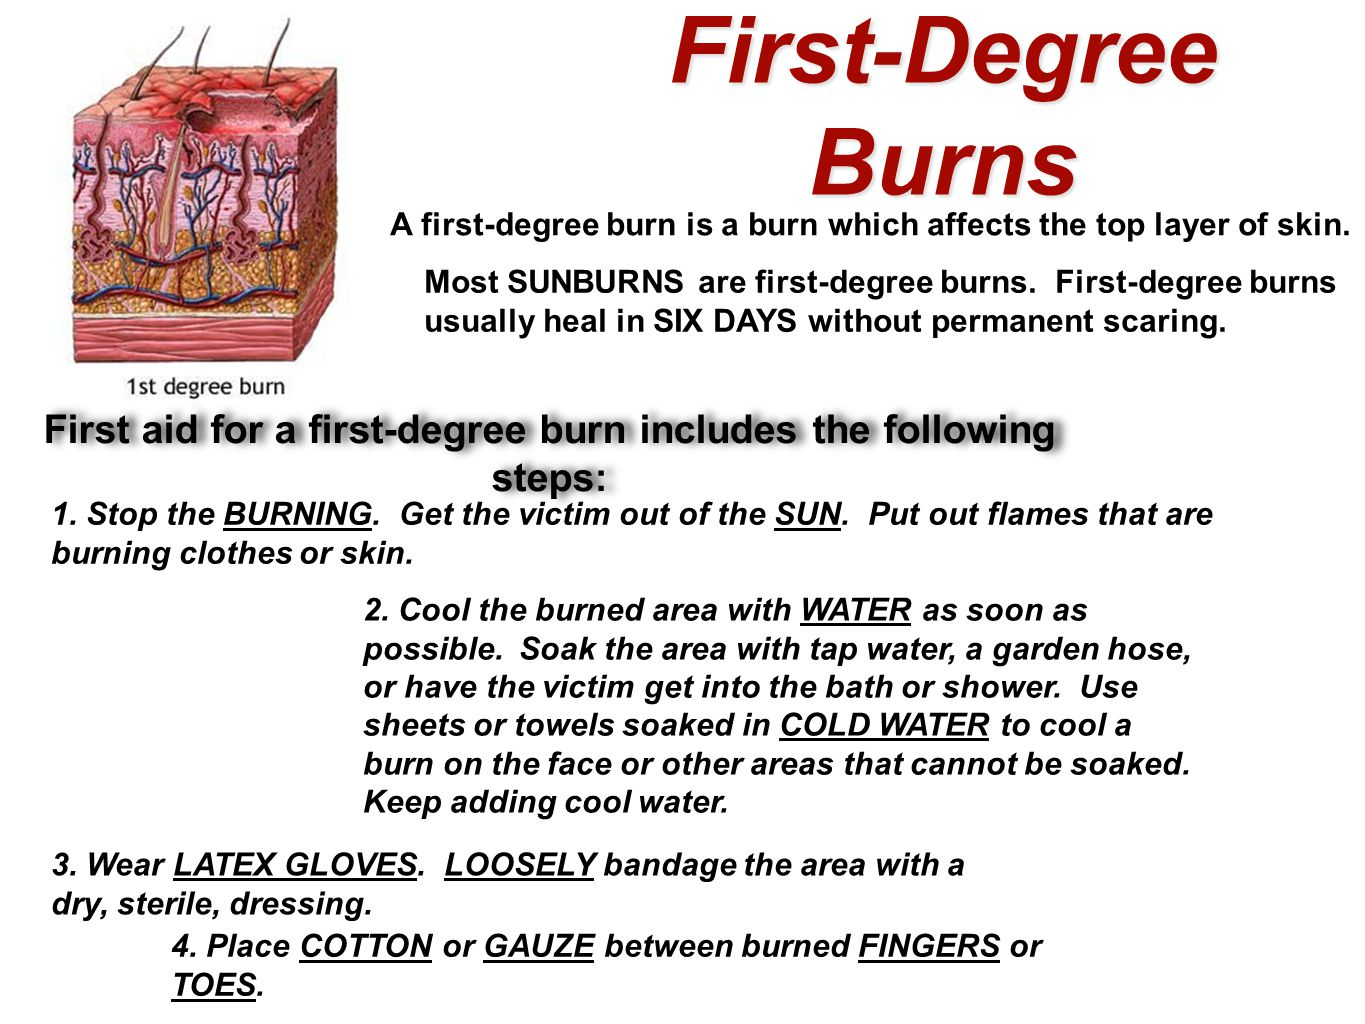 First-Degree Burns A first-degree burn is a burn which affects the top layer of skin.